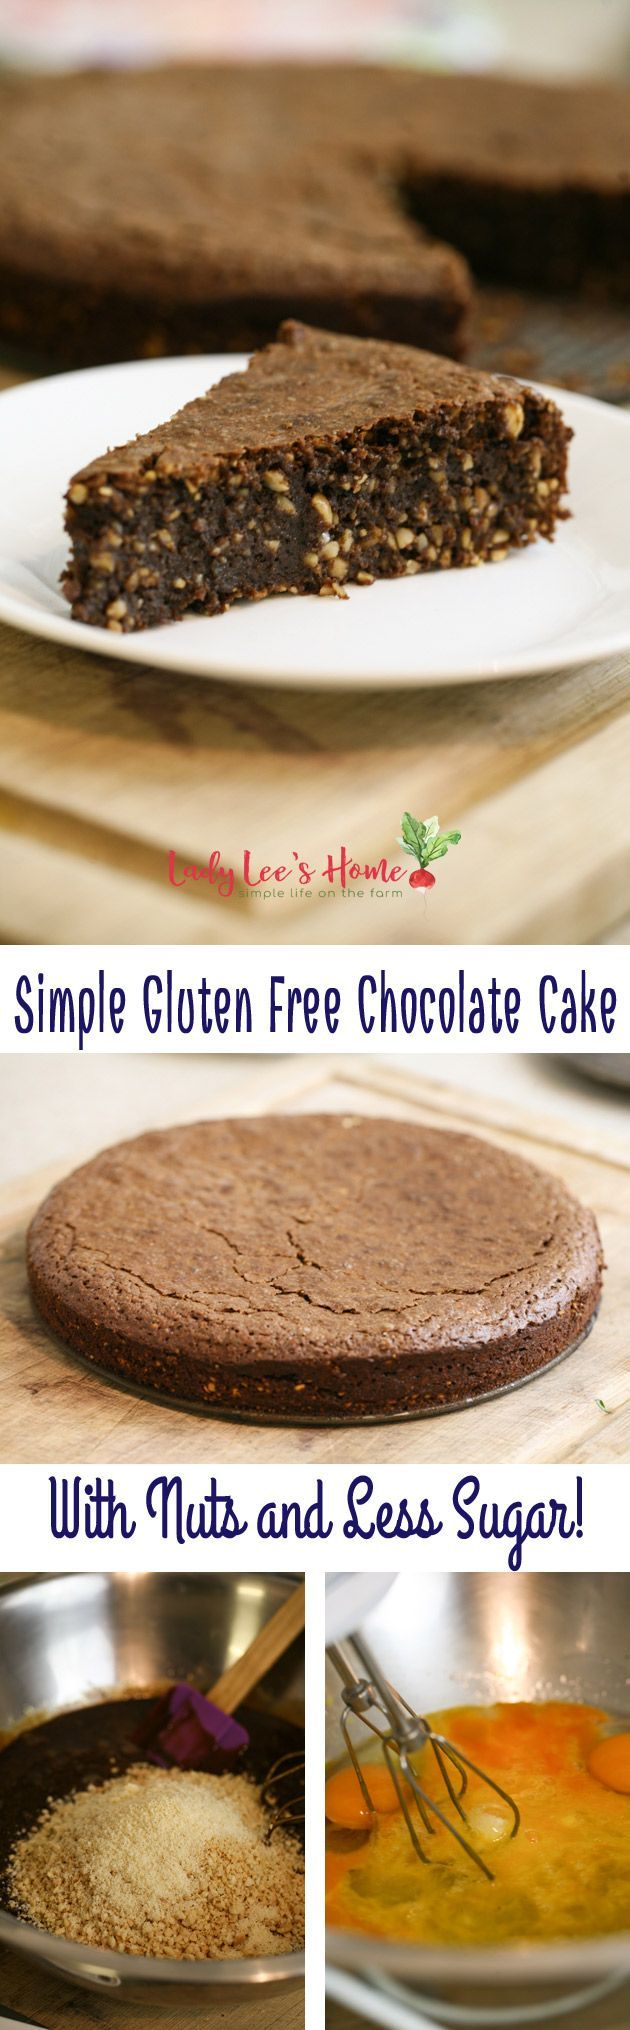 Here is a recipe for a simple gluten-free chocolate cake. With lots of nuts and less sugar. It is moist and delicious. Will go very well with berries, ice cream, and whipped cream.   #LadyLeesHome #chocolate #cake #dessert #chocolatecake #glutenfree #glutenfreedeserts